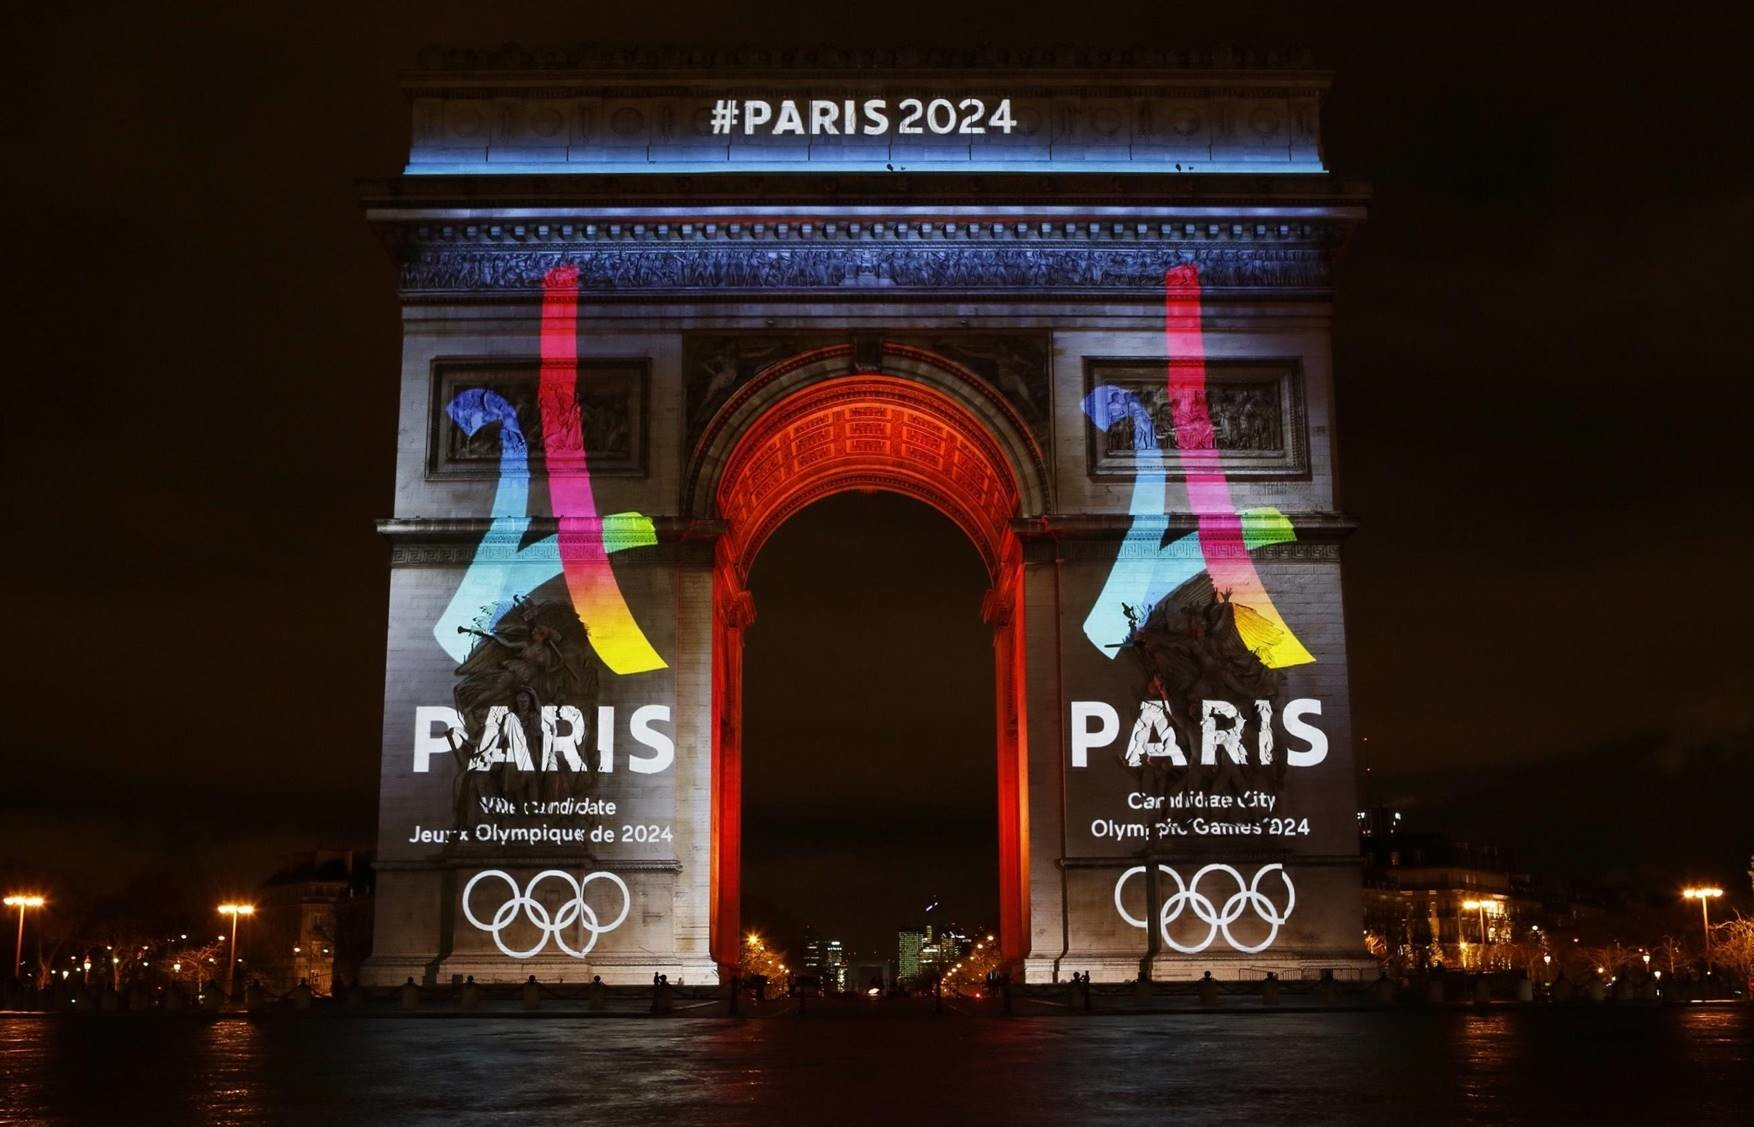 The deadline to confirm event programs and athlete quotas for the Paris 2024 Olympic Games will remain in December this year, the International Olympic Committee (IOC) says